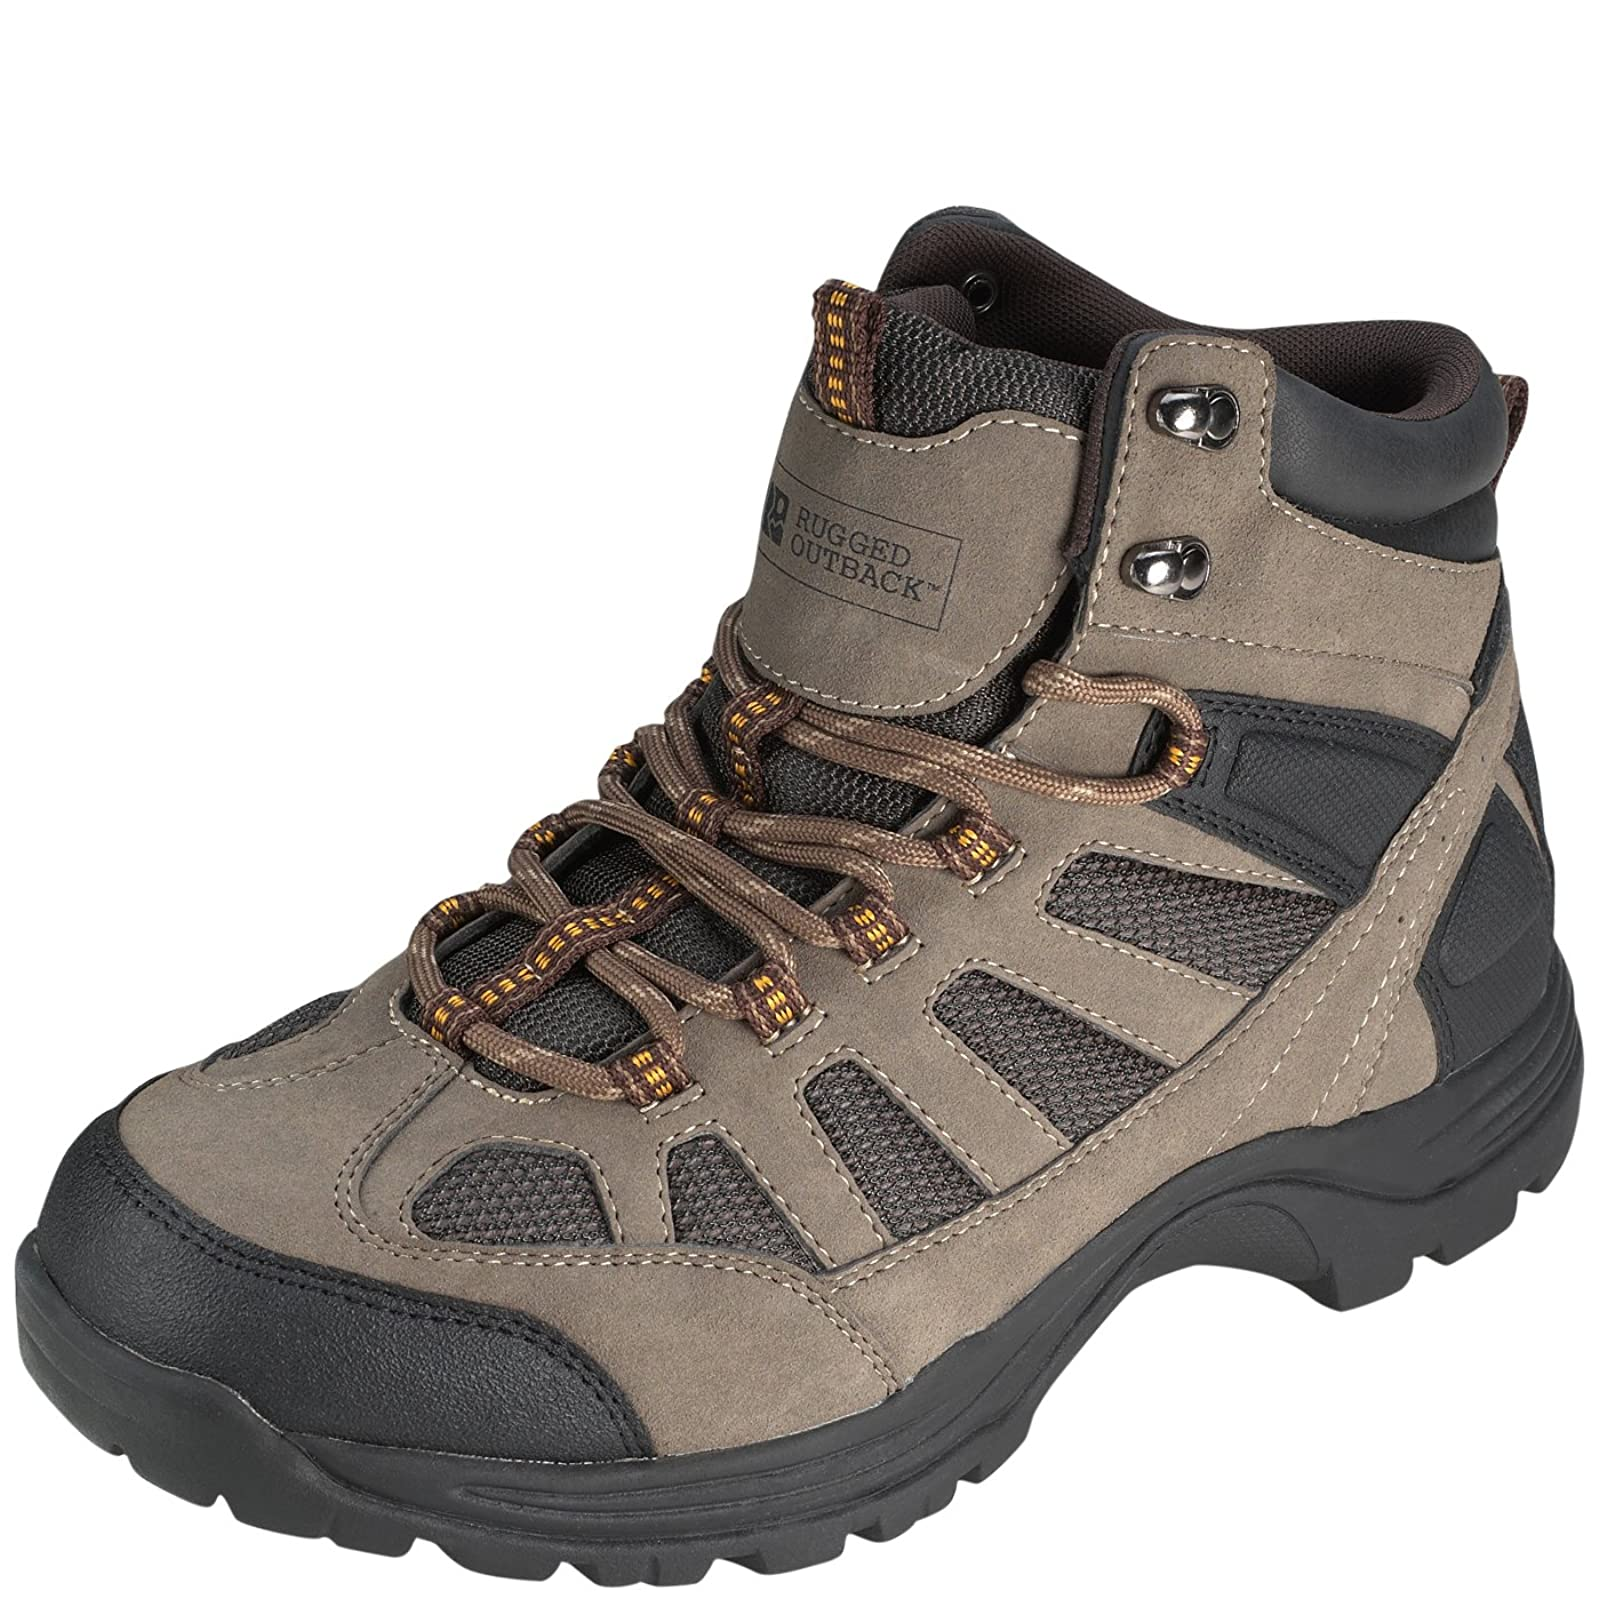 Rugged Outback Men's Ridge Mid Hiker Small - 4